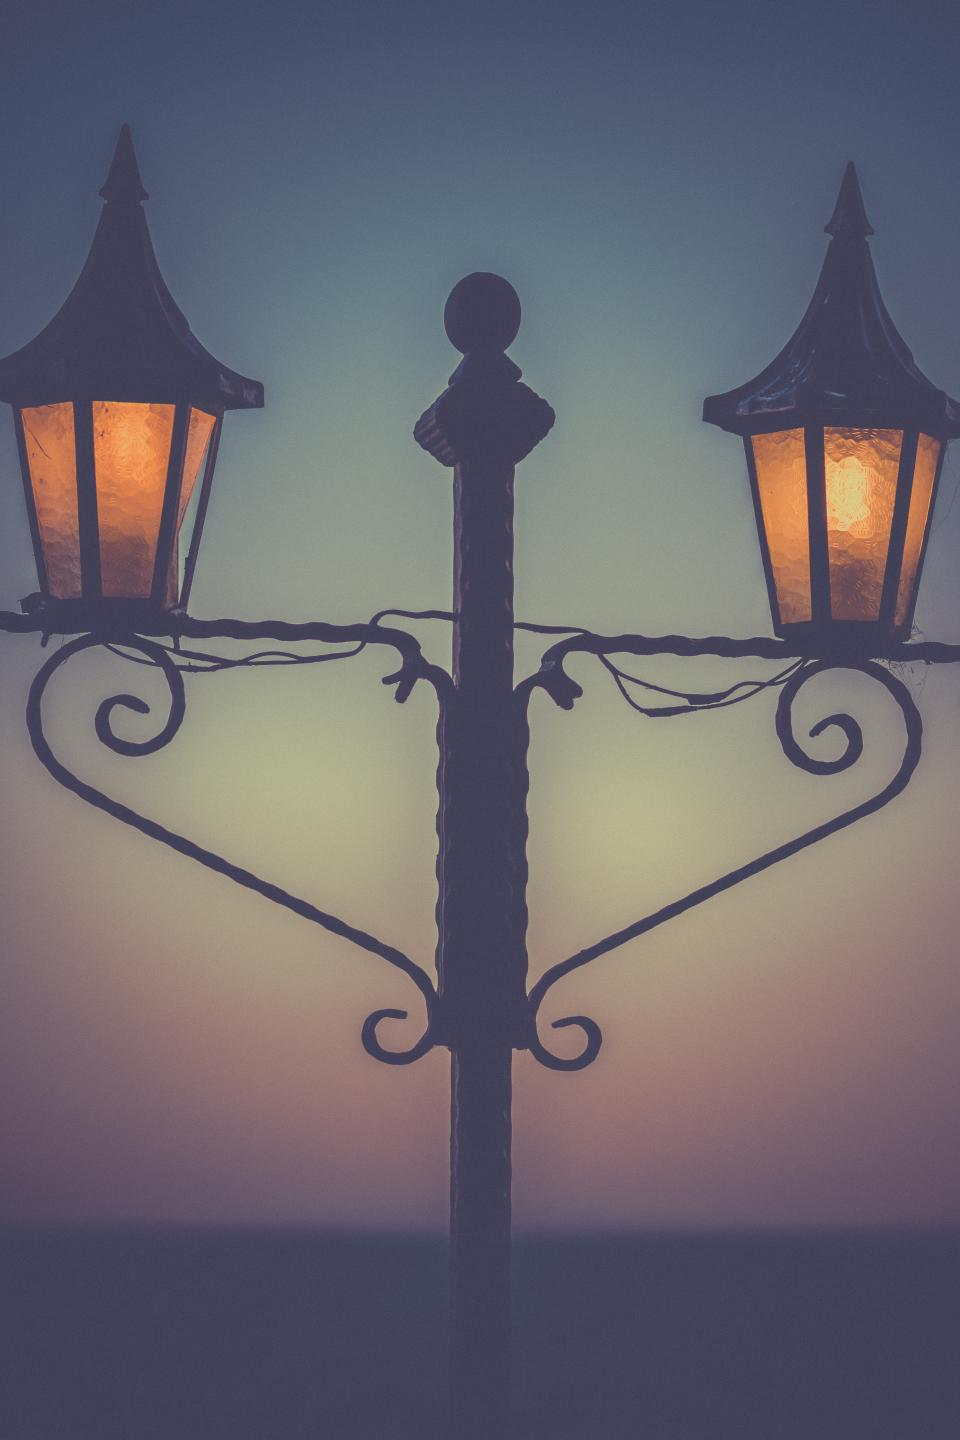 street lights lamp posts night dark evening silhouette shadow